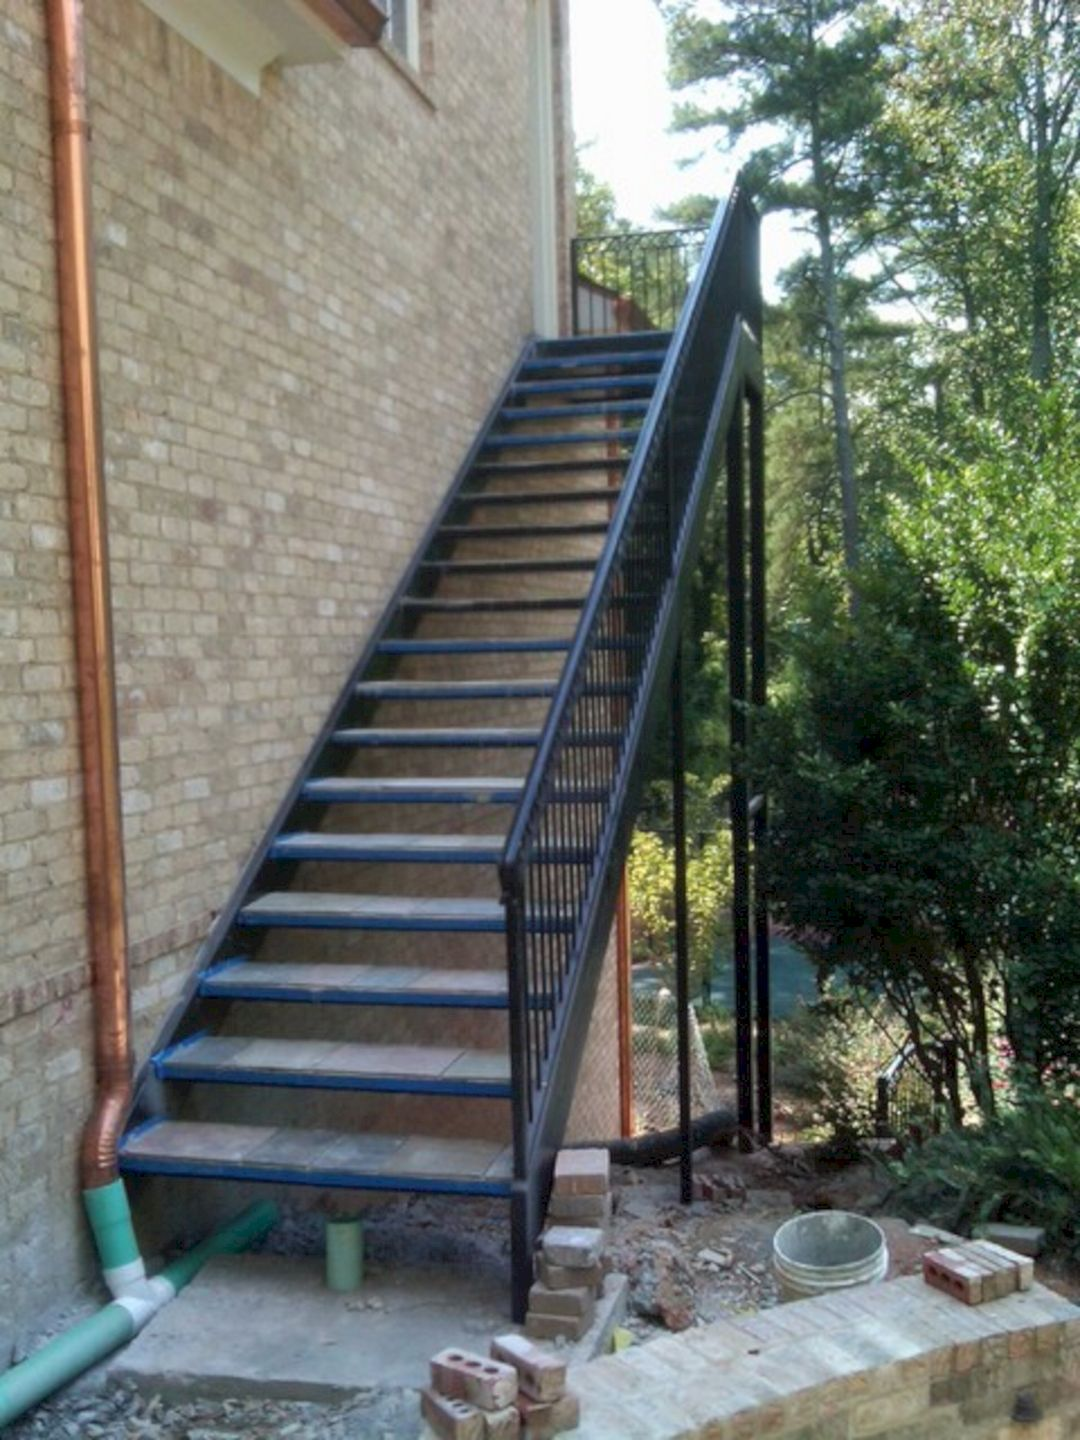 Incredible 8 Outdoor Stairs Design Ideas For Your Home Freshouz   Iron Steps For Home   Banister   Railing   Near Me Handrail   Manufactured Home   Mobile Home